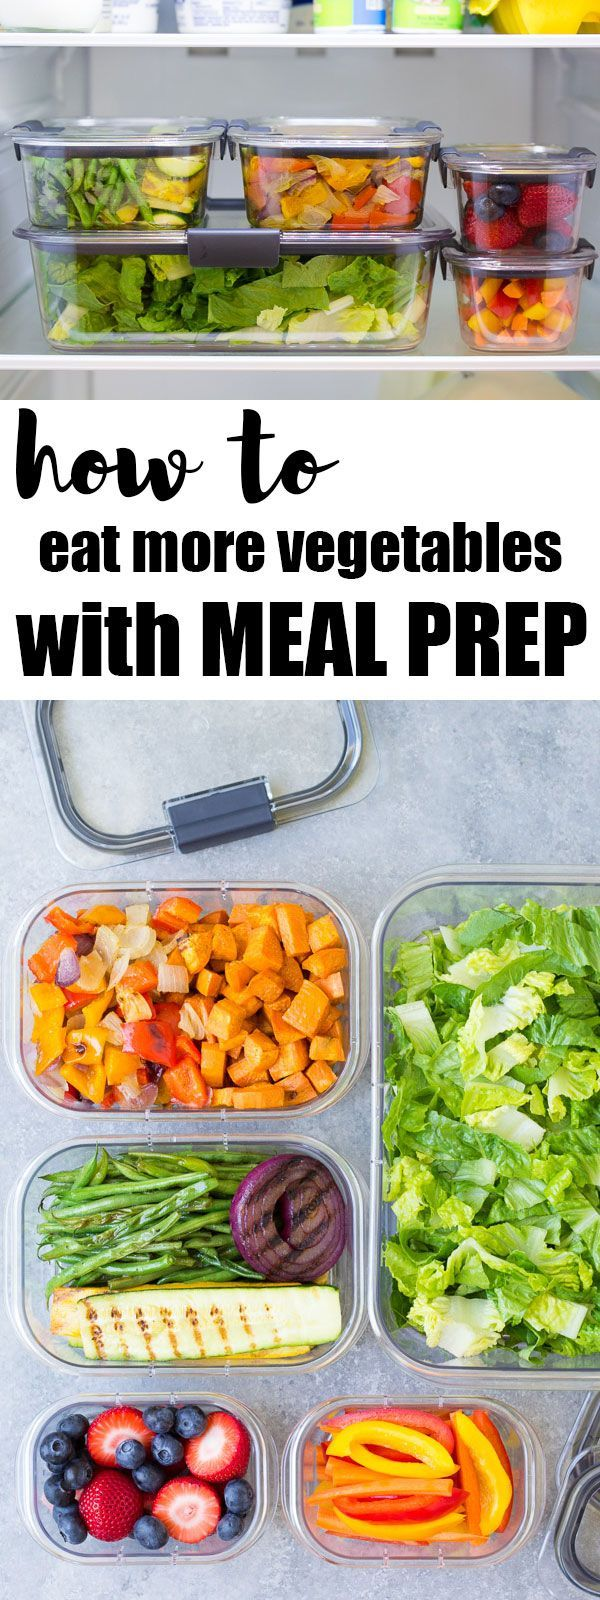 How to eat more vegetables and fruits with meal prep. AD. You'll eat much more fresh produce when it's ready and visible in your refrigerator! Save time with weekly food prep.